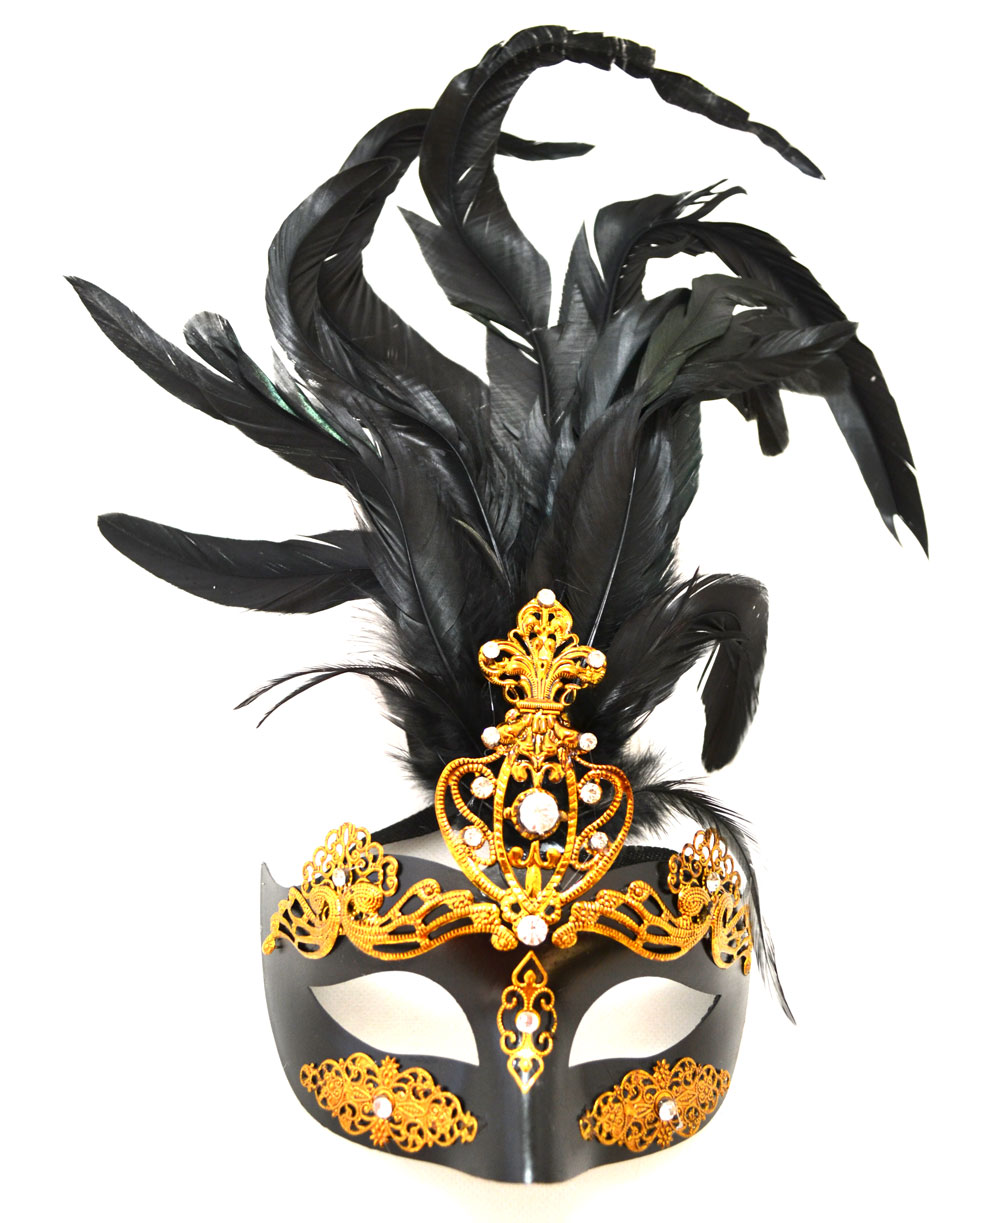 Showgirl Style Mask with Feathers